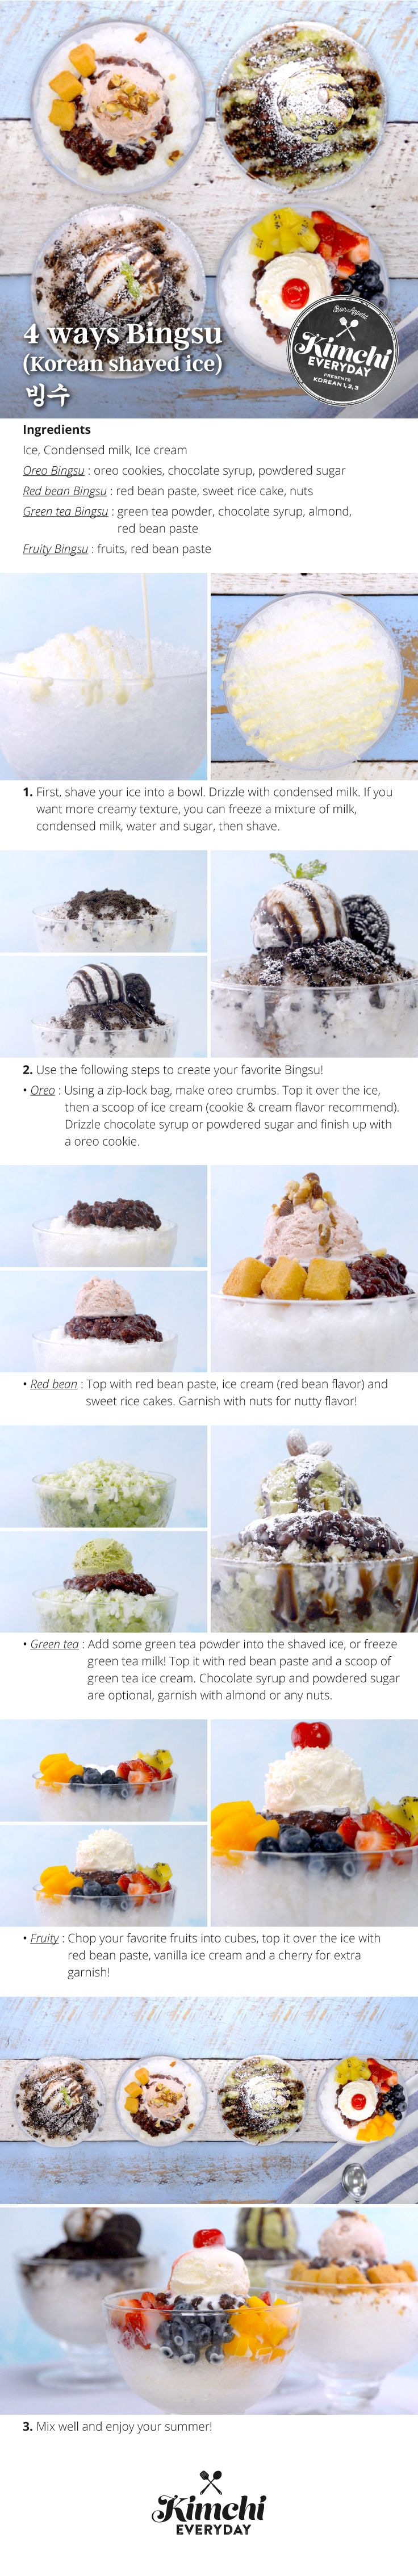 Here's 4ways Bingsu (Korean shaved ice) to try it! Have a spoon of sweets that keep you cool.